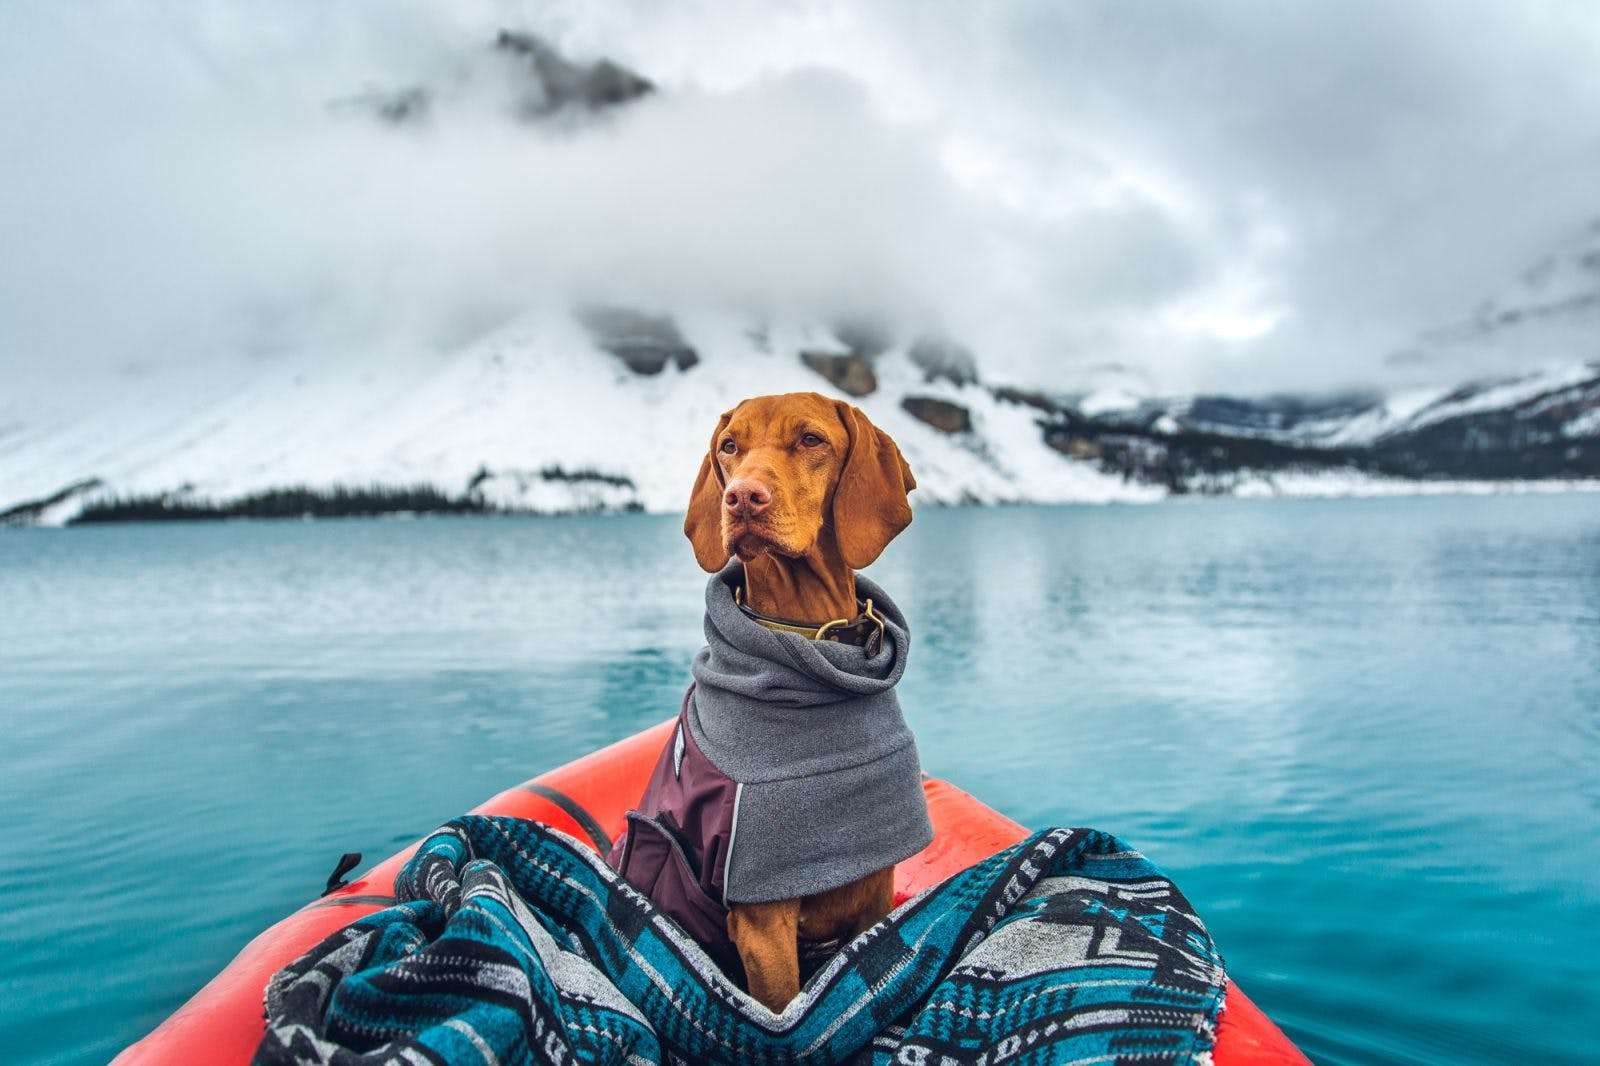 Whiskey the Vizsla wrapped up in a blanket on Bow Lake on a cloudy evening in Banff National Park, Canada